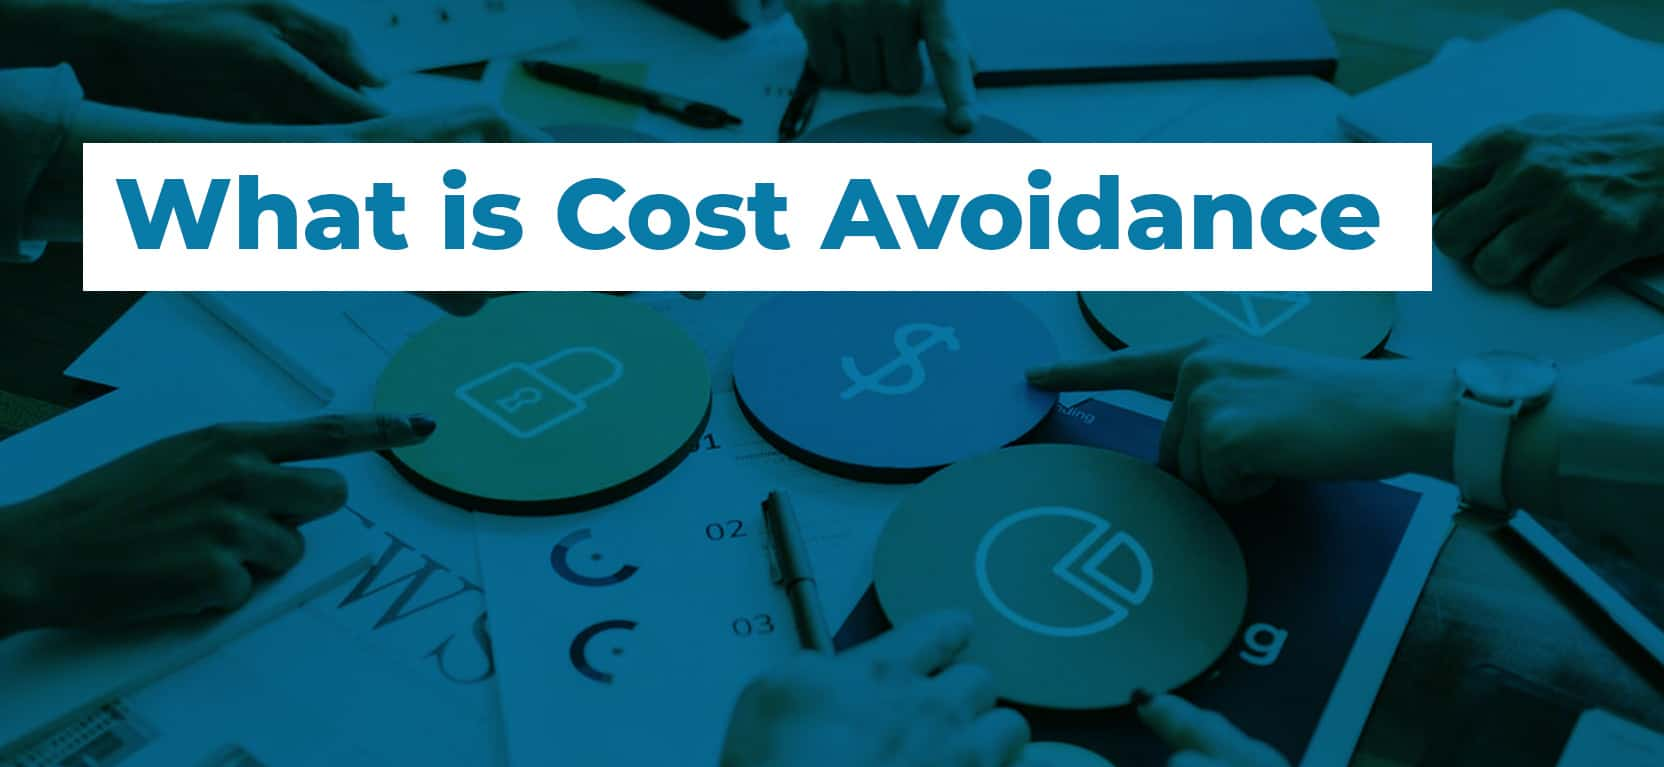 09 What is Cost Avoidance2